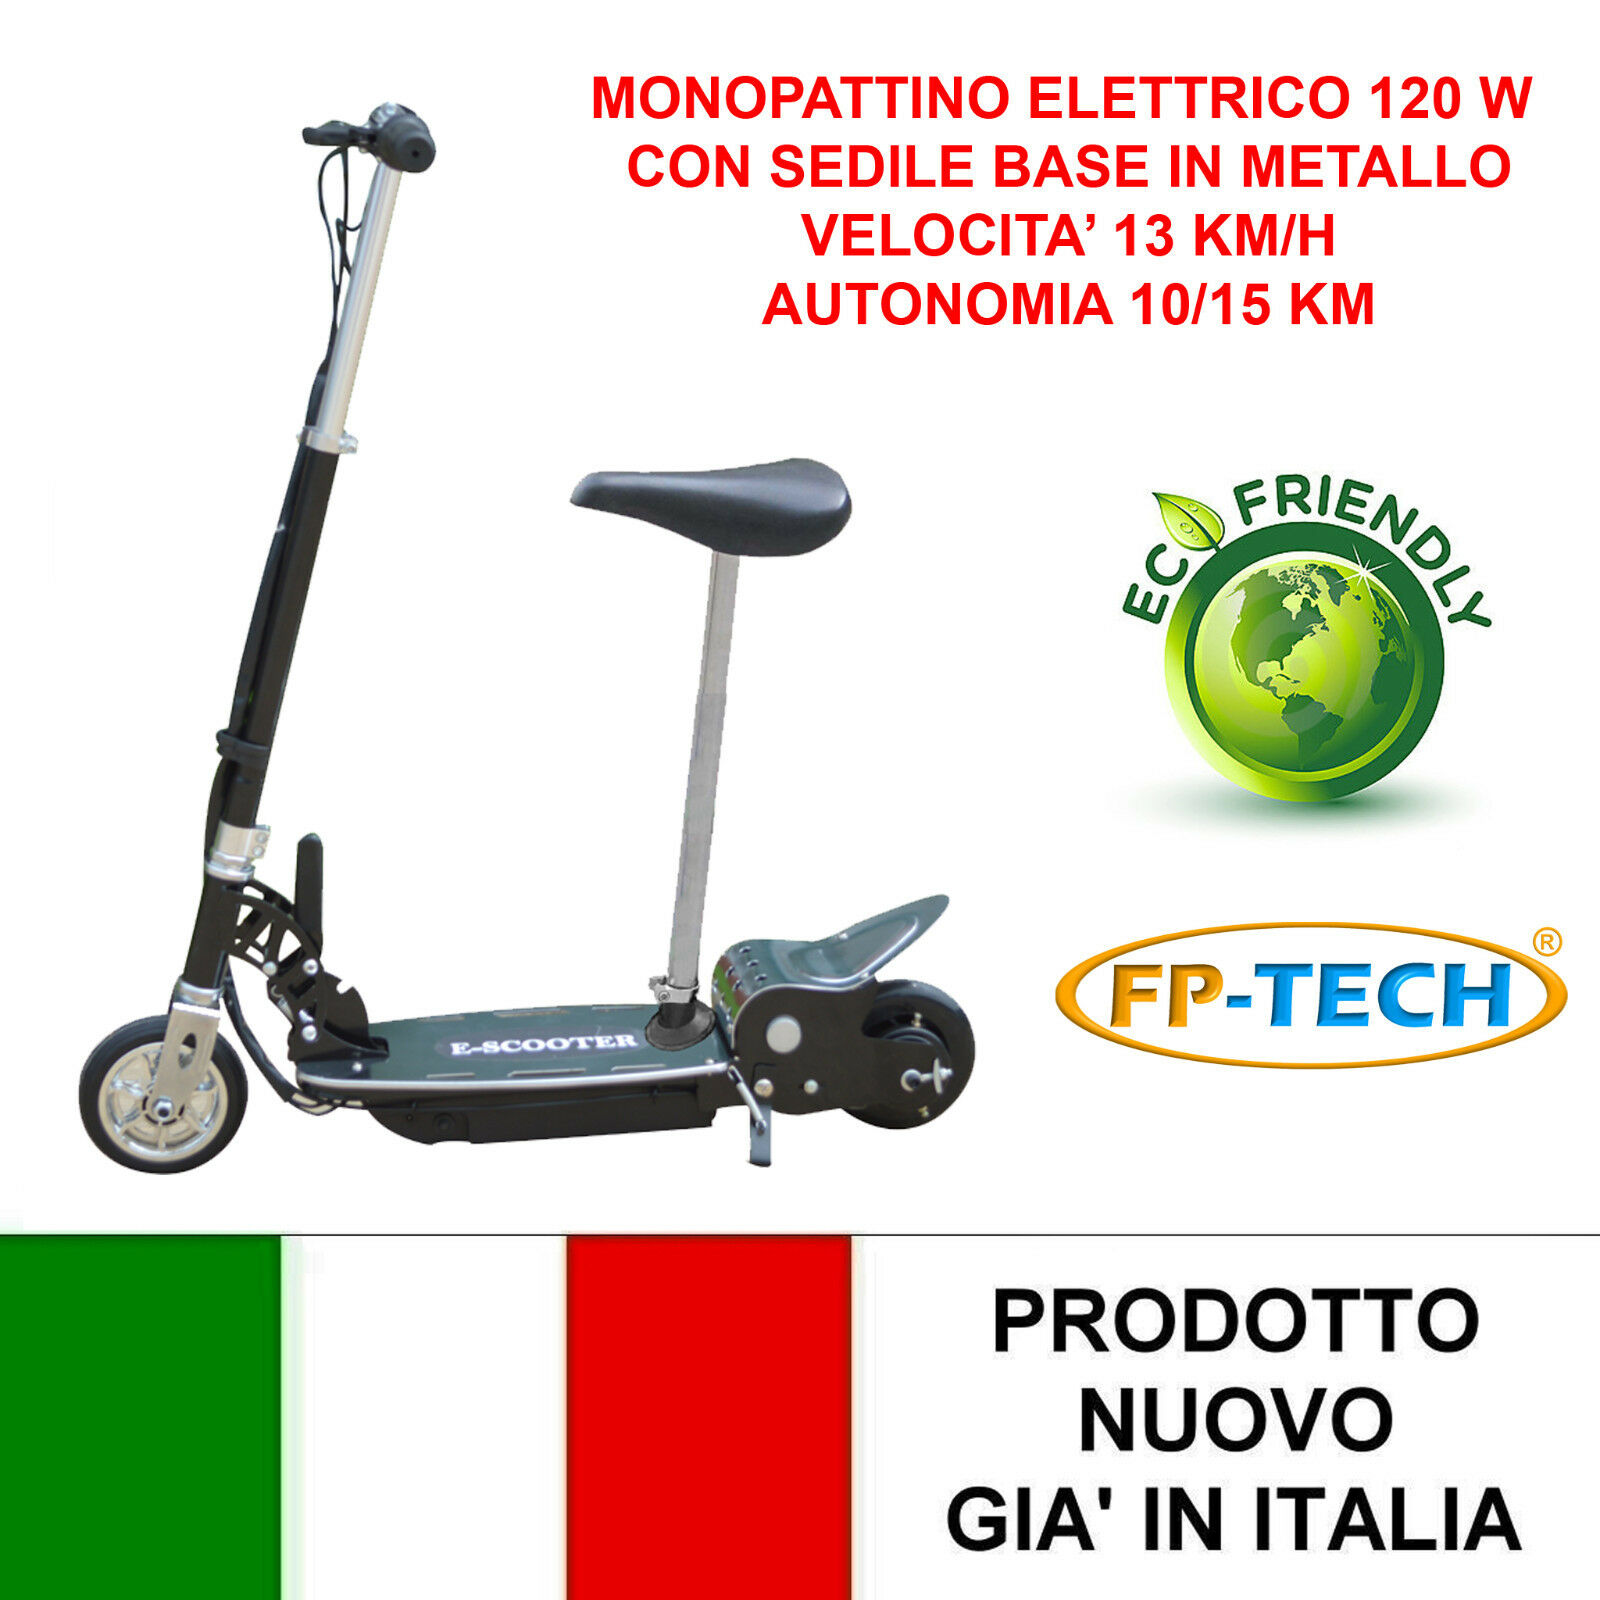 Electric Scooter with Seat 24 V 120w Base Metallic E-Scooter Electric